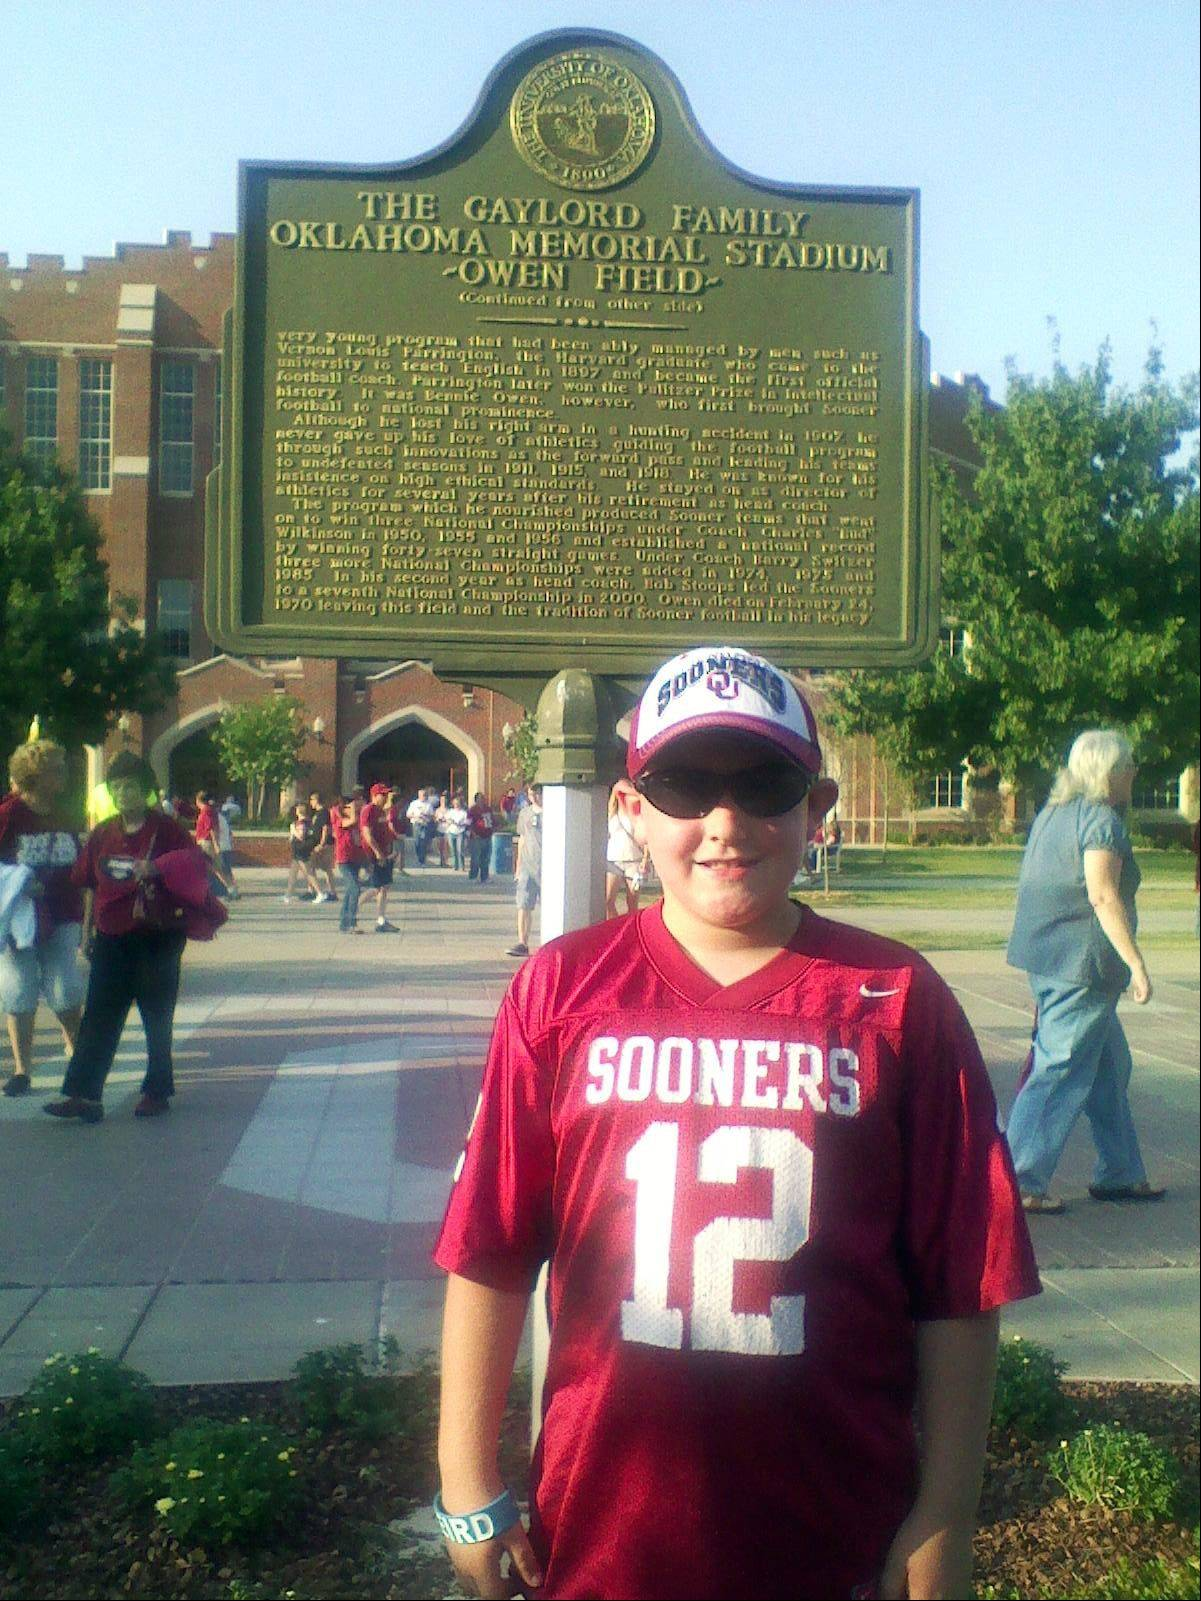 Eight-year-old tornado victim Kyle Davis poses for a photo while attending an Oklahoma University football game at Owen Field, in Norman, Okla. Kyle was killed Monday, May 20, 2013, when a huge tornado roared through Moore, Okla., flattening entire neighborhoods and destroying Kyle's elementary school with a direct blow as children and teachers huddled against winds up to 200 mph.